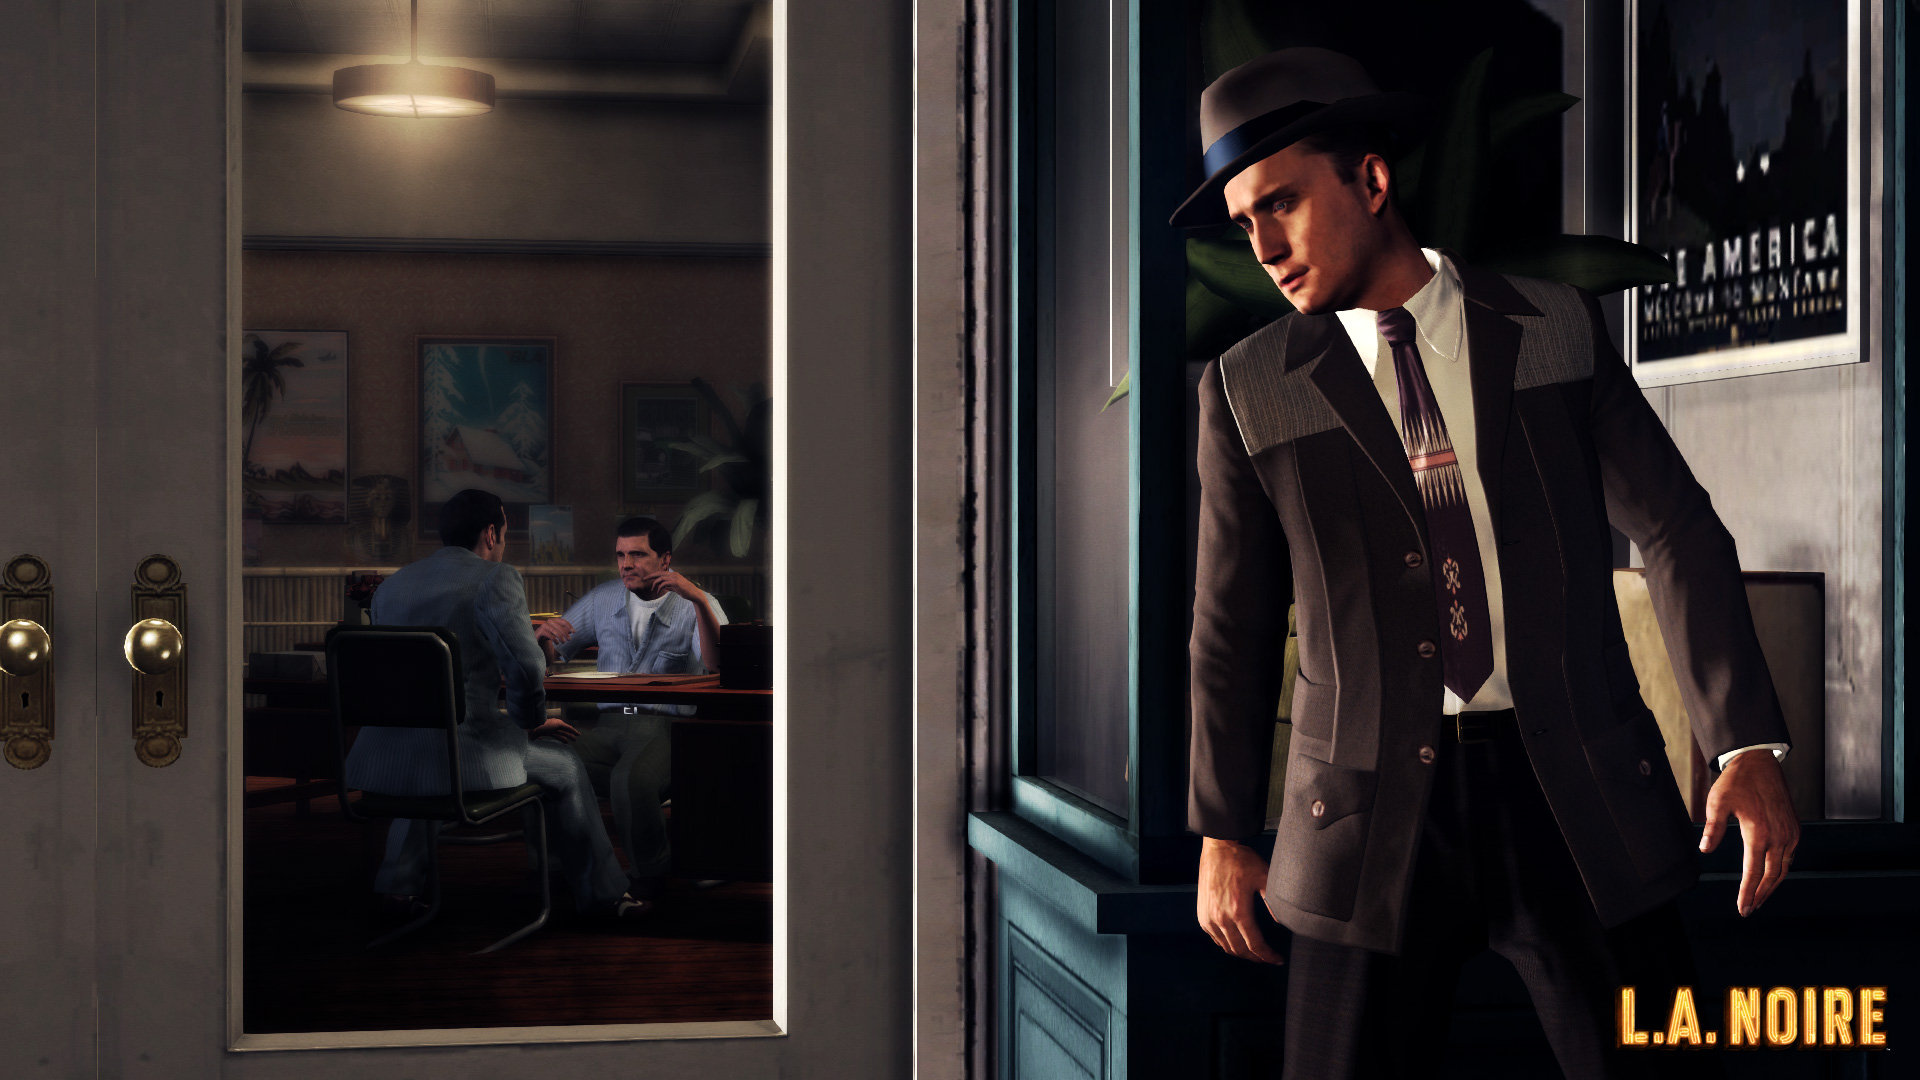 la noire backgrounds